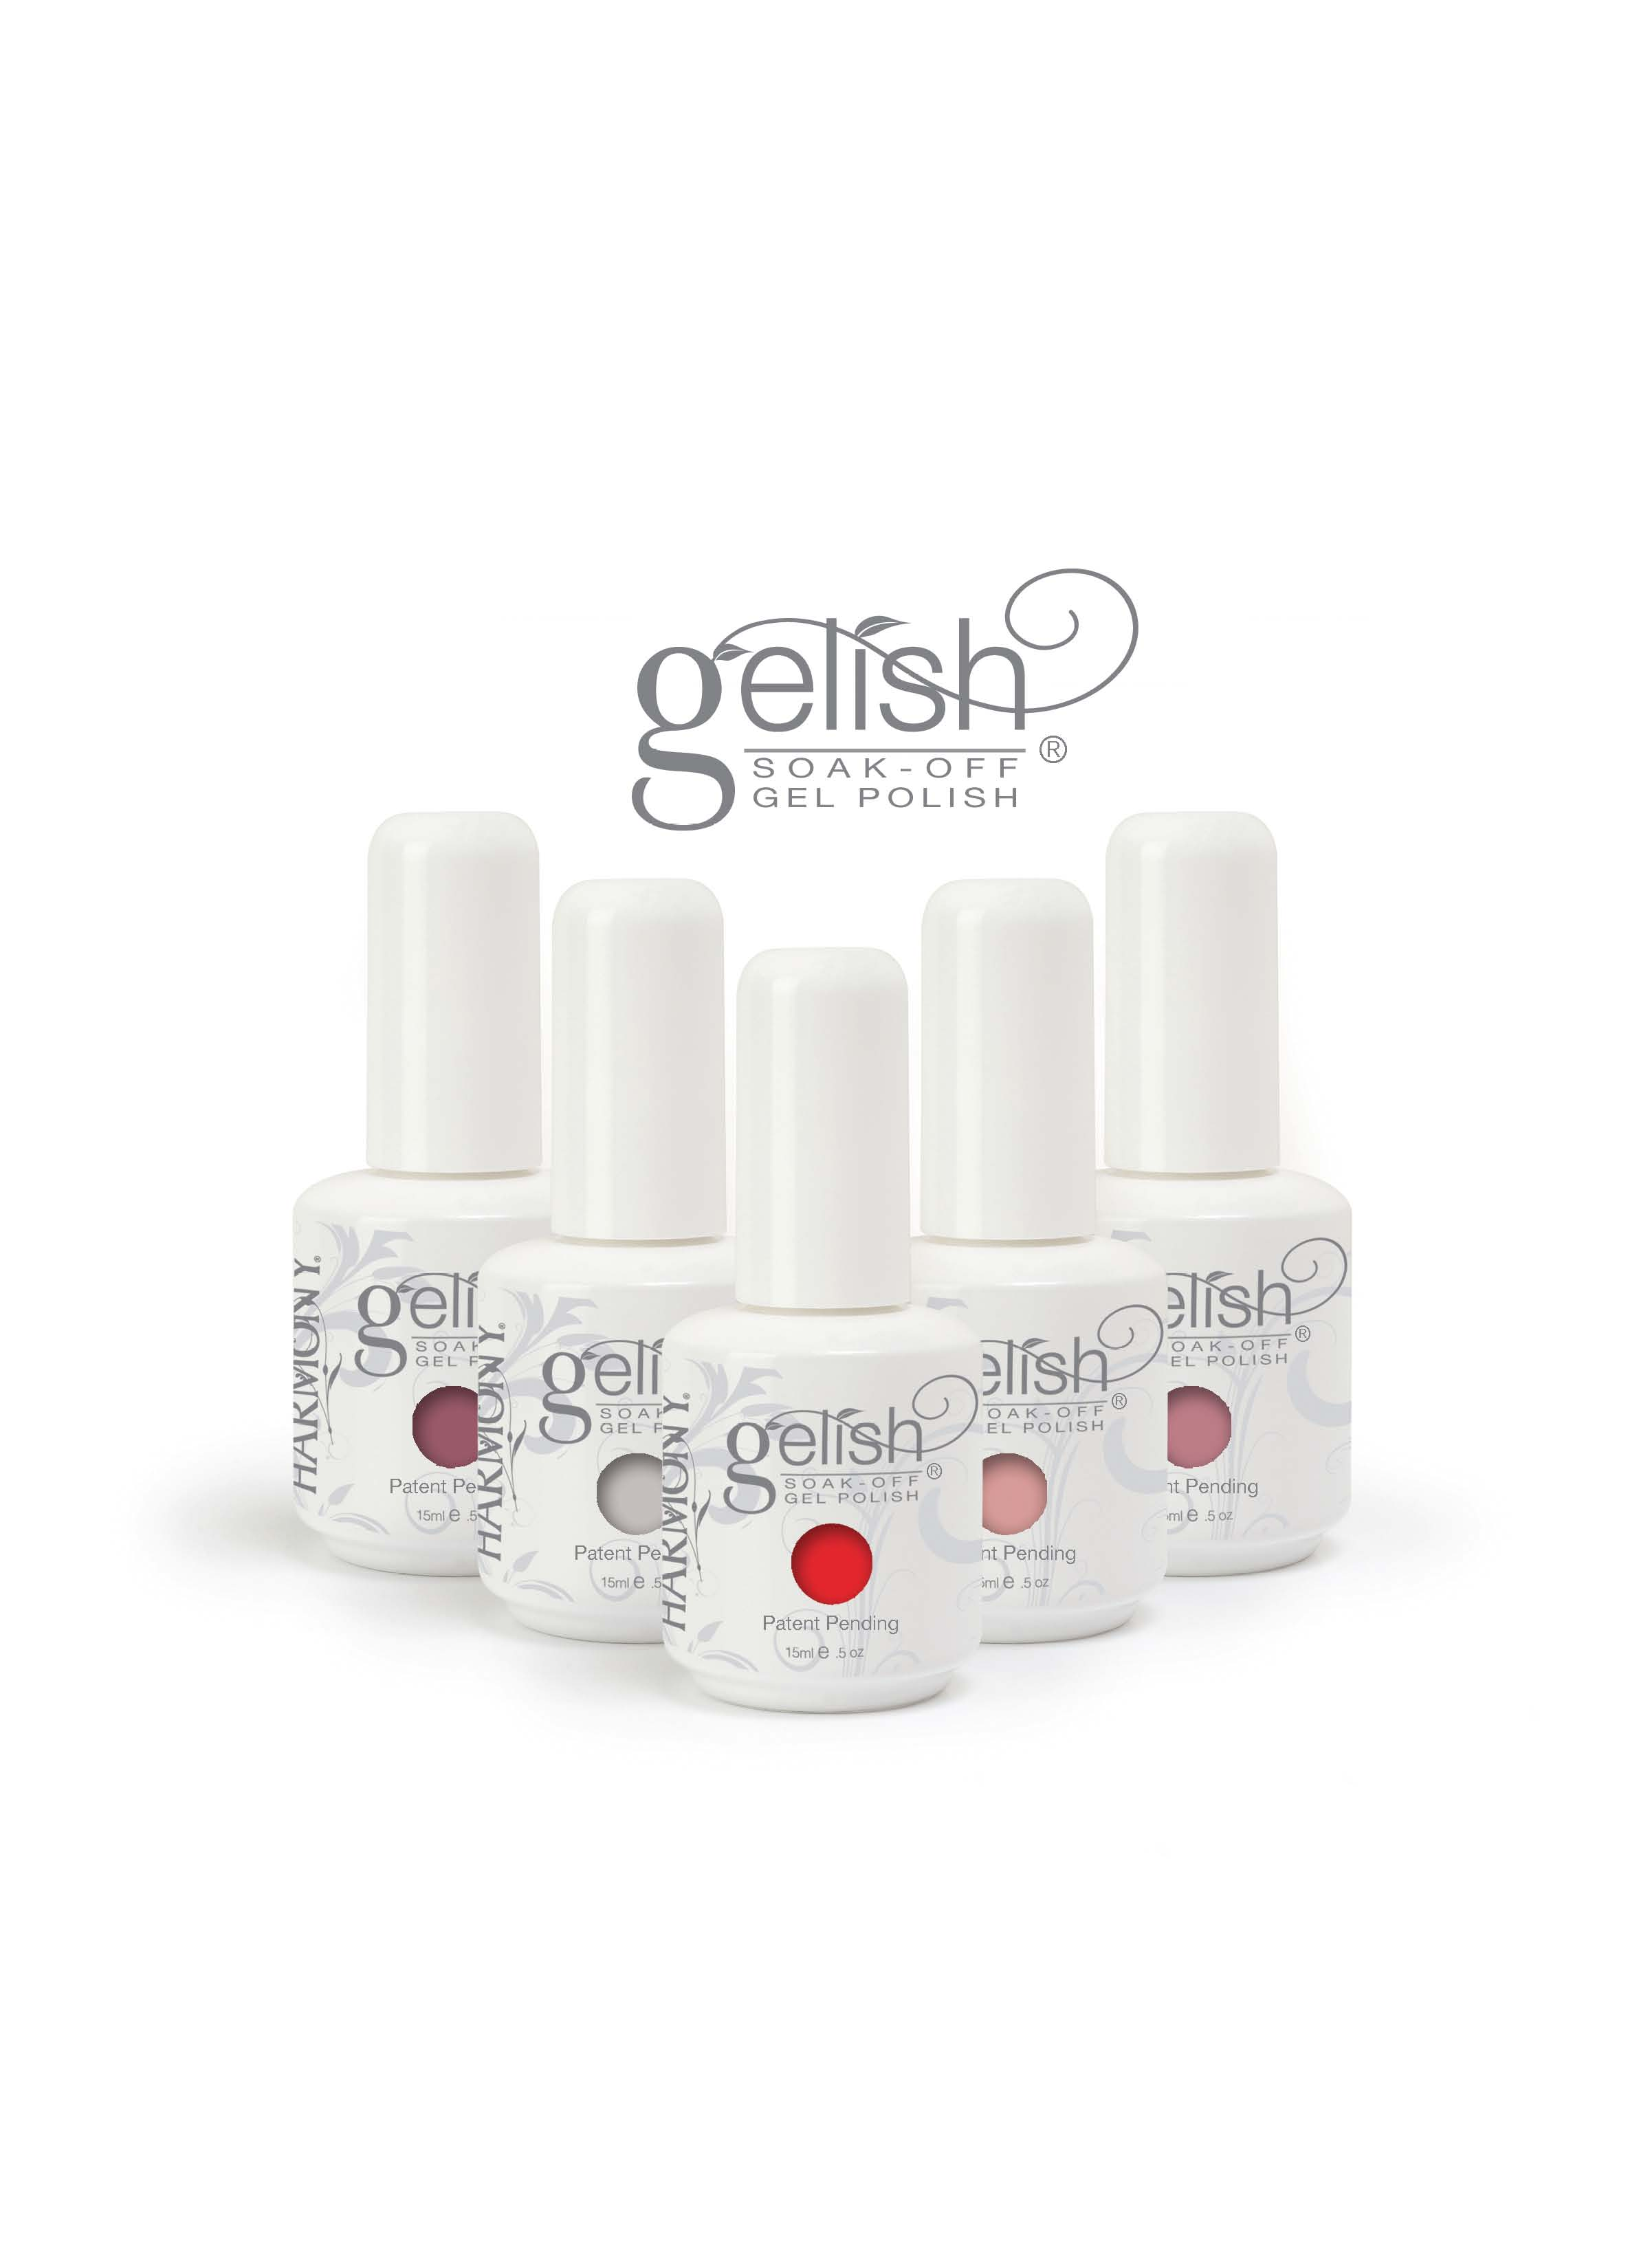 Gelish Nails Manicure Pedicure Breeze Beauty Salon Weymouth Dorset